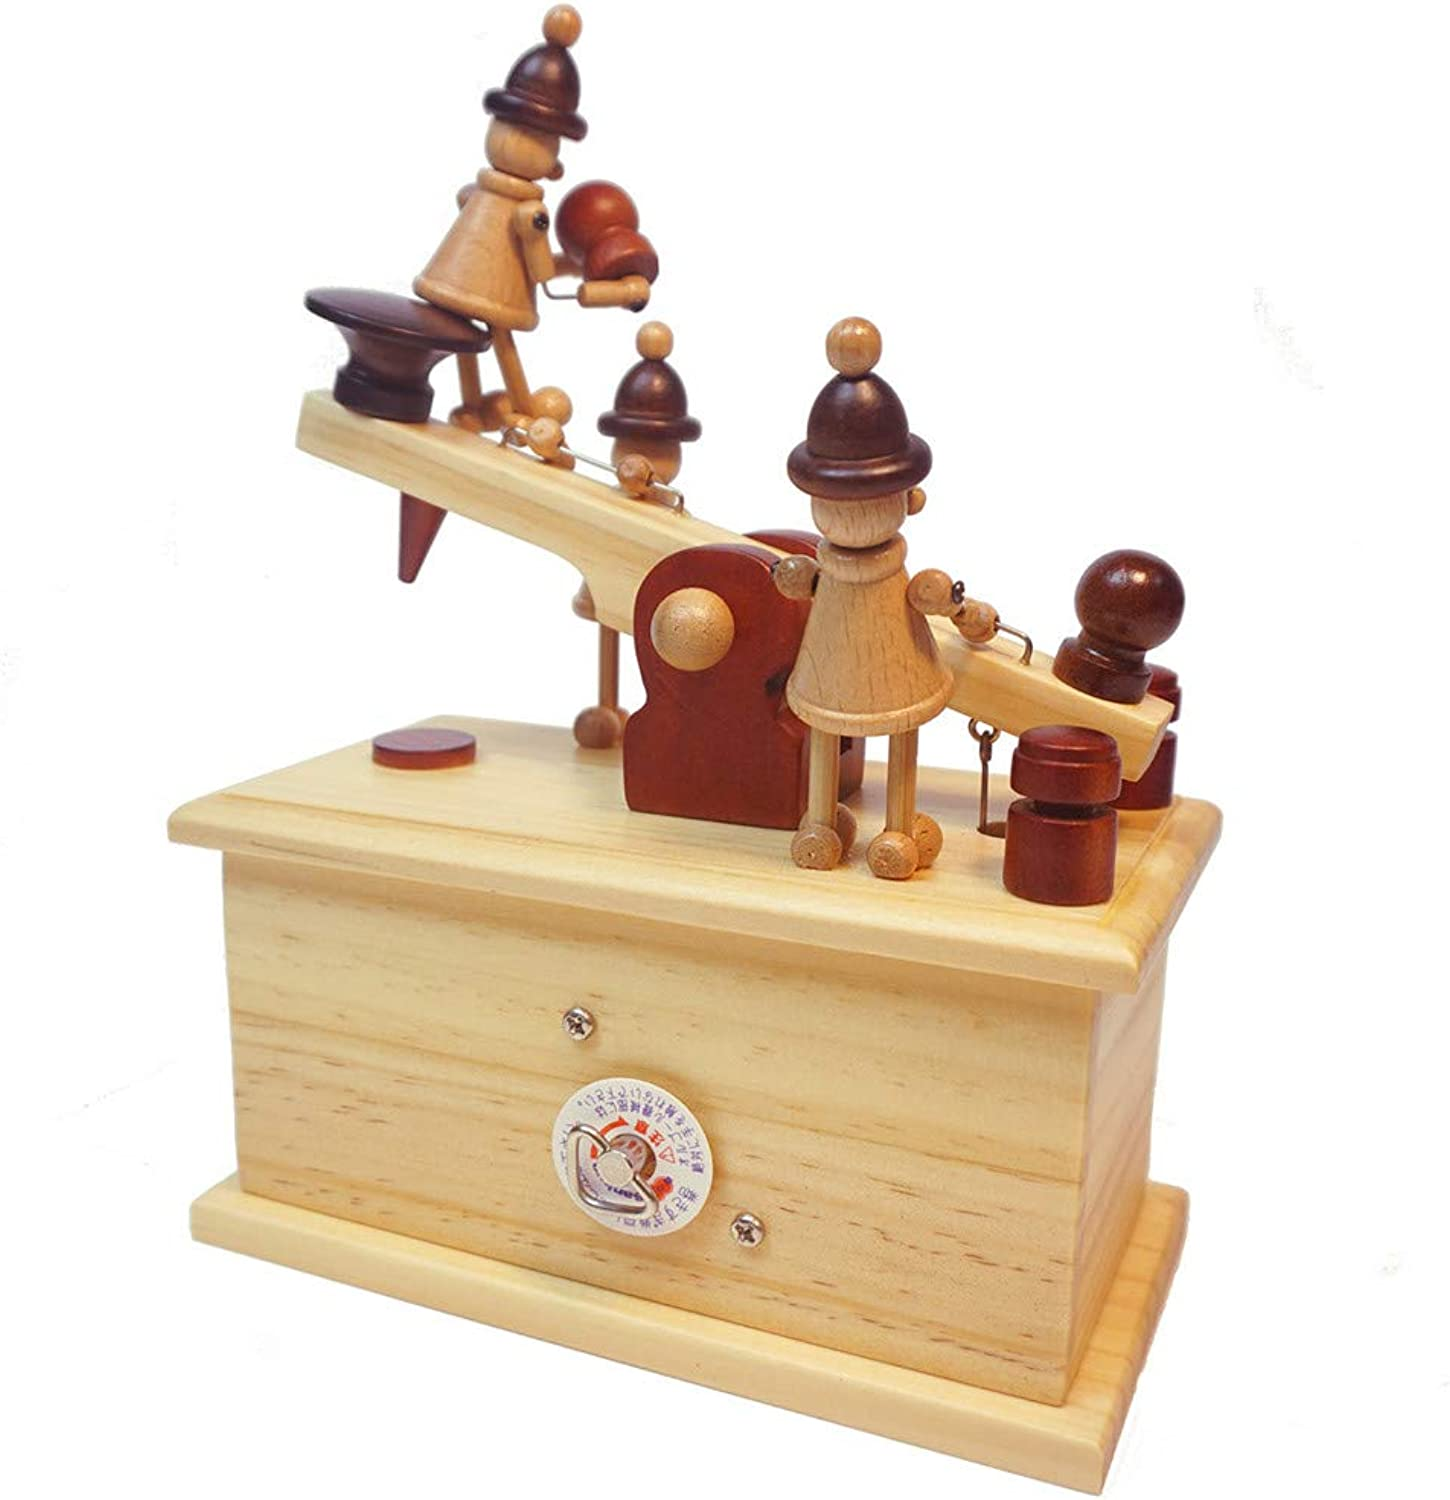 Yishelle Retro Vintage Printer & Telegraph Pattern Music Box Toy Hand-wooden Music Box Creative Wooden Crafts Gifts for Kids, Birthday, Xmas, Valentine's Day (color   Telegraph)